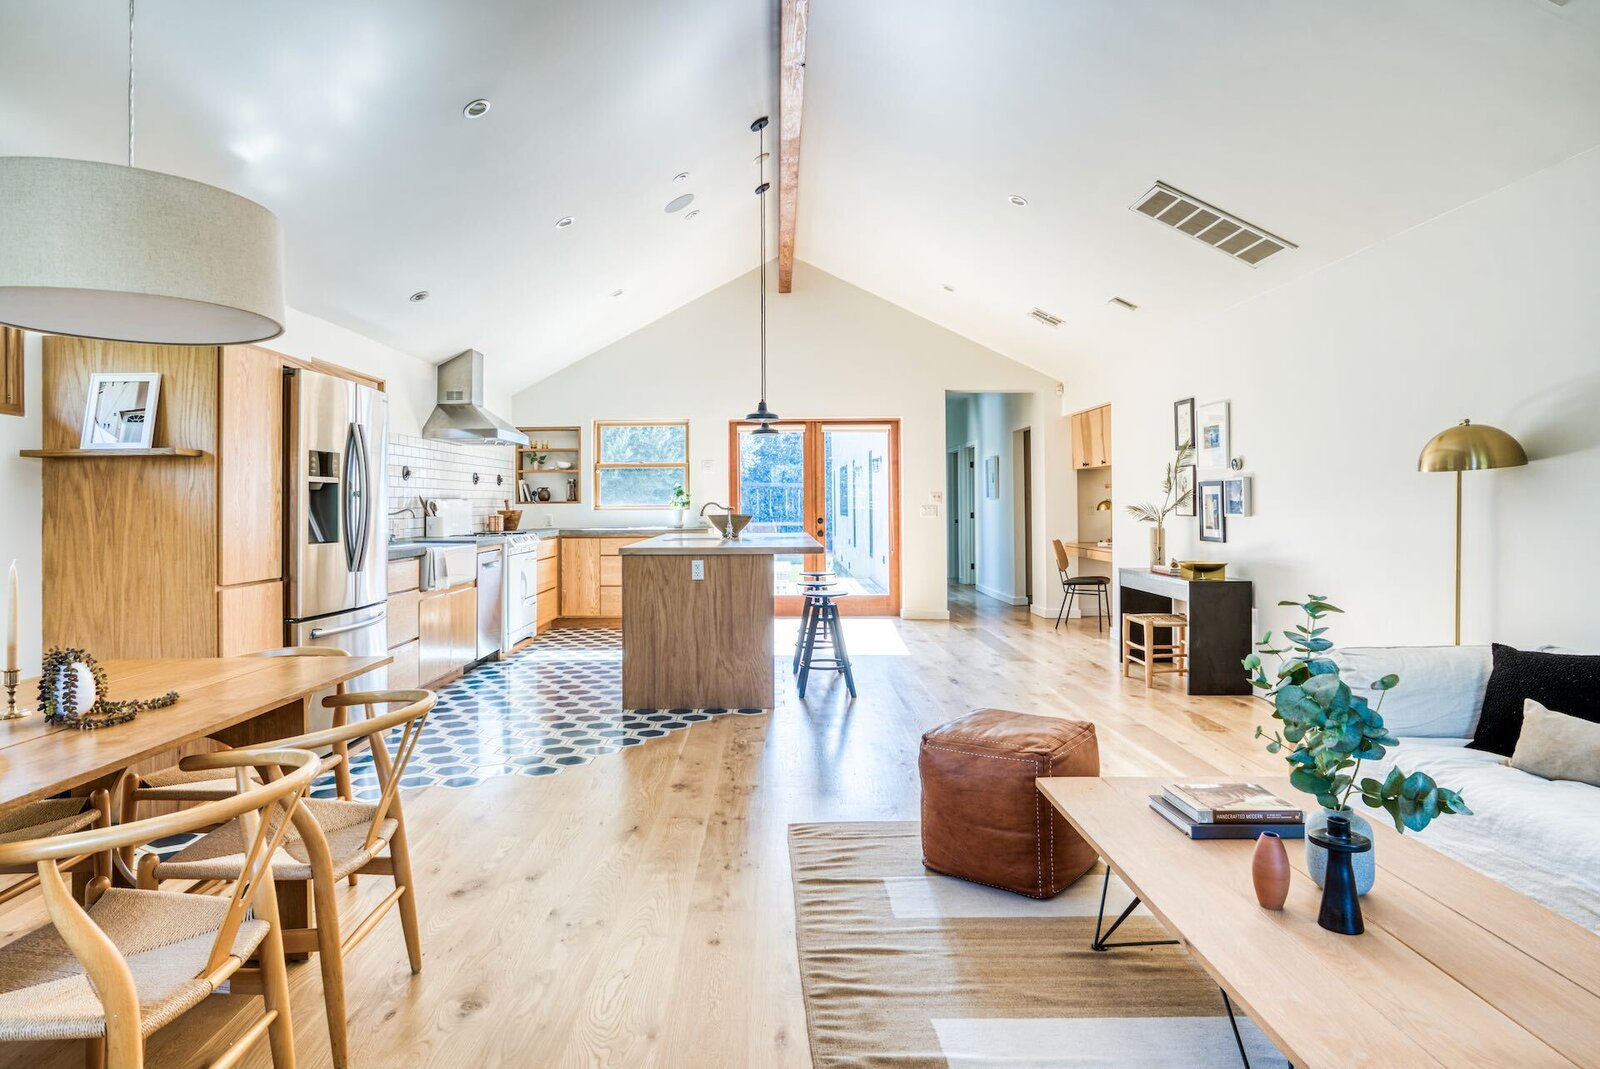 A great room greets you just behind the front door. Wide-plank hardwood floors and a pitched ceiling lead the eye across the unencumbered space.  Photo 2 of 15 in In Los Angeles, a Remixed Craftsman Bungalow Lists for $1.9M